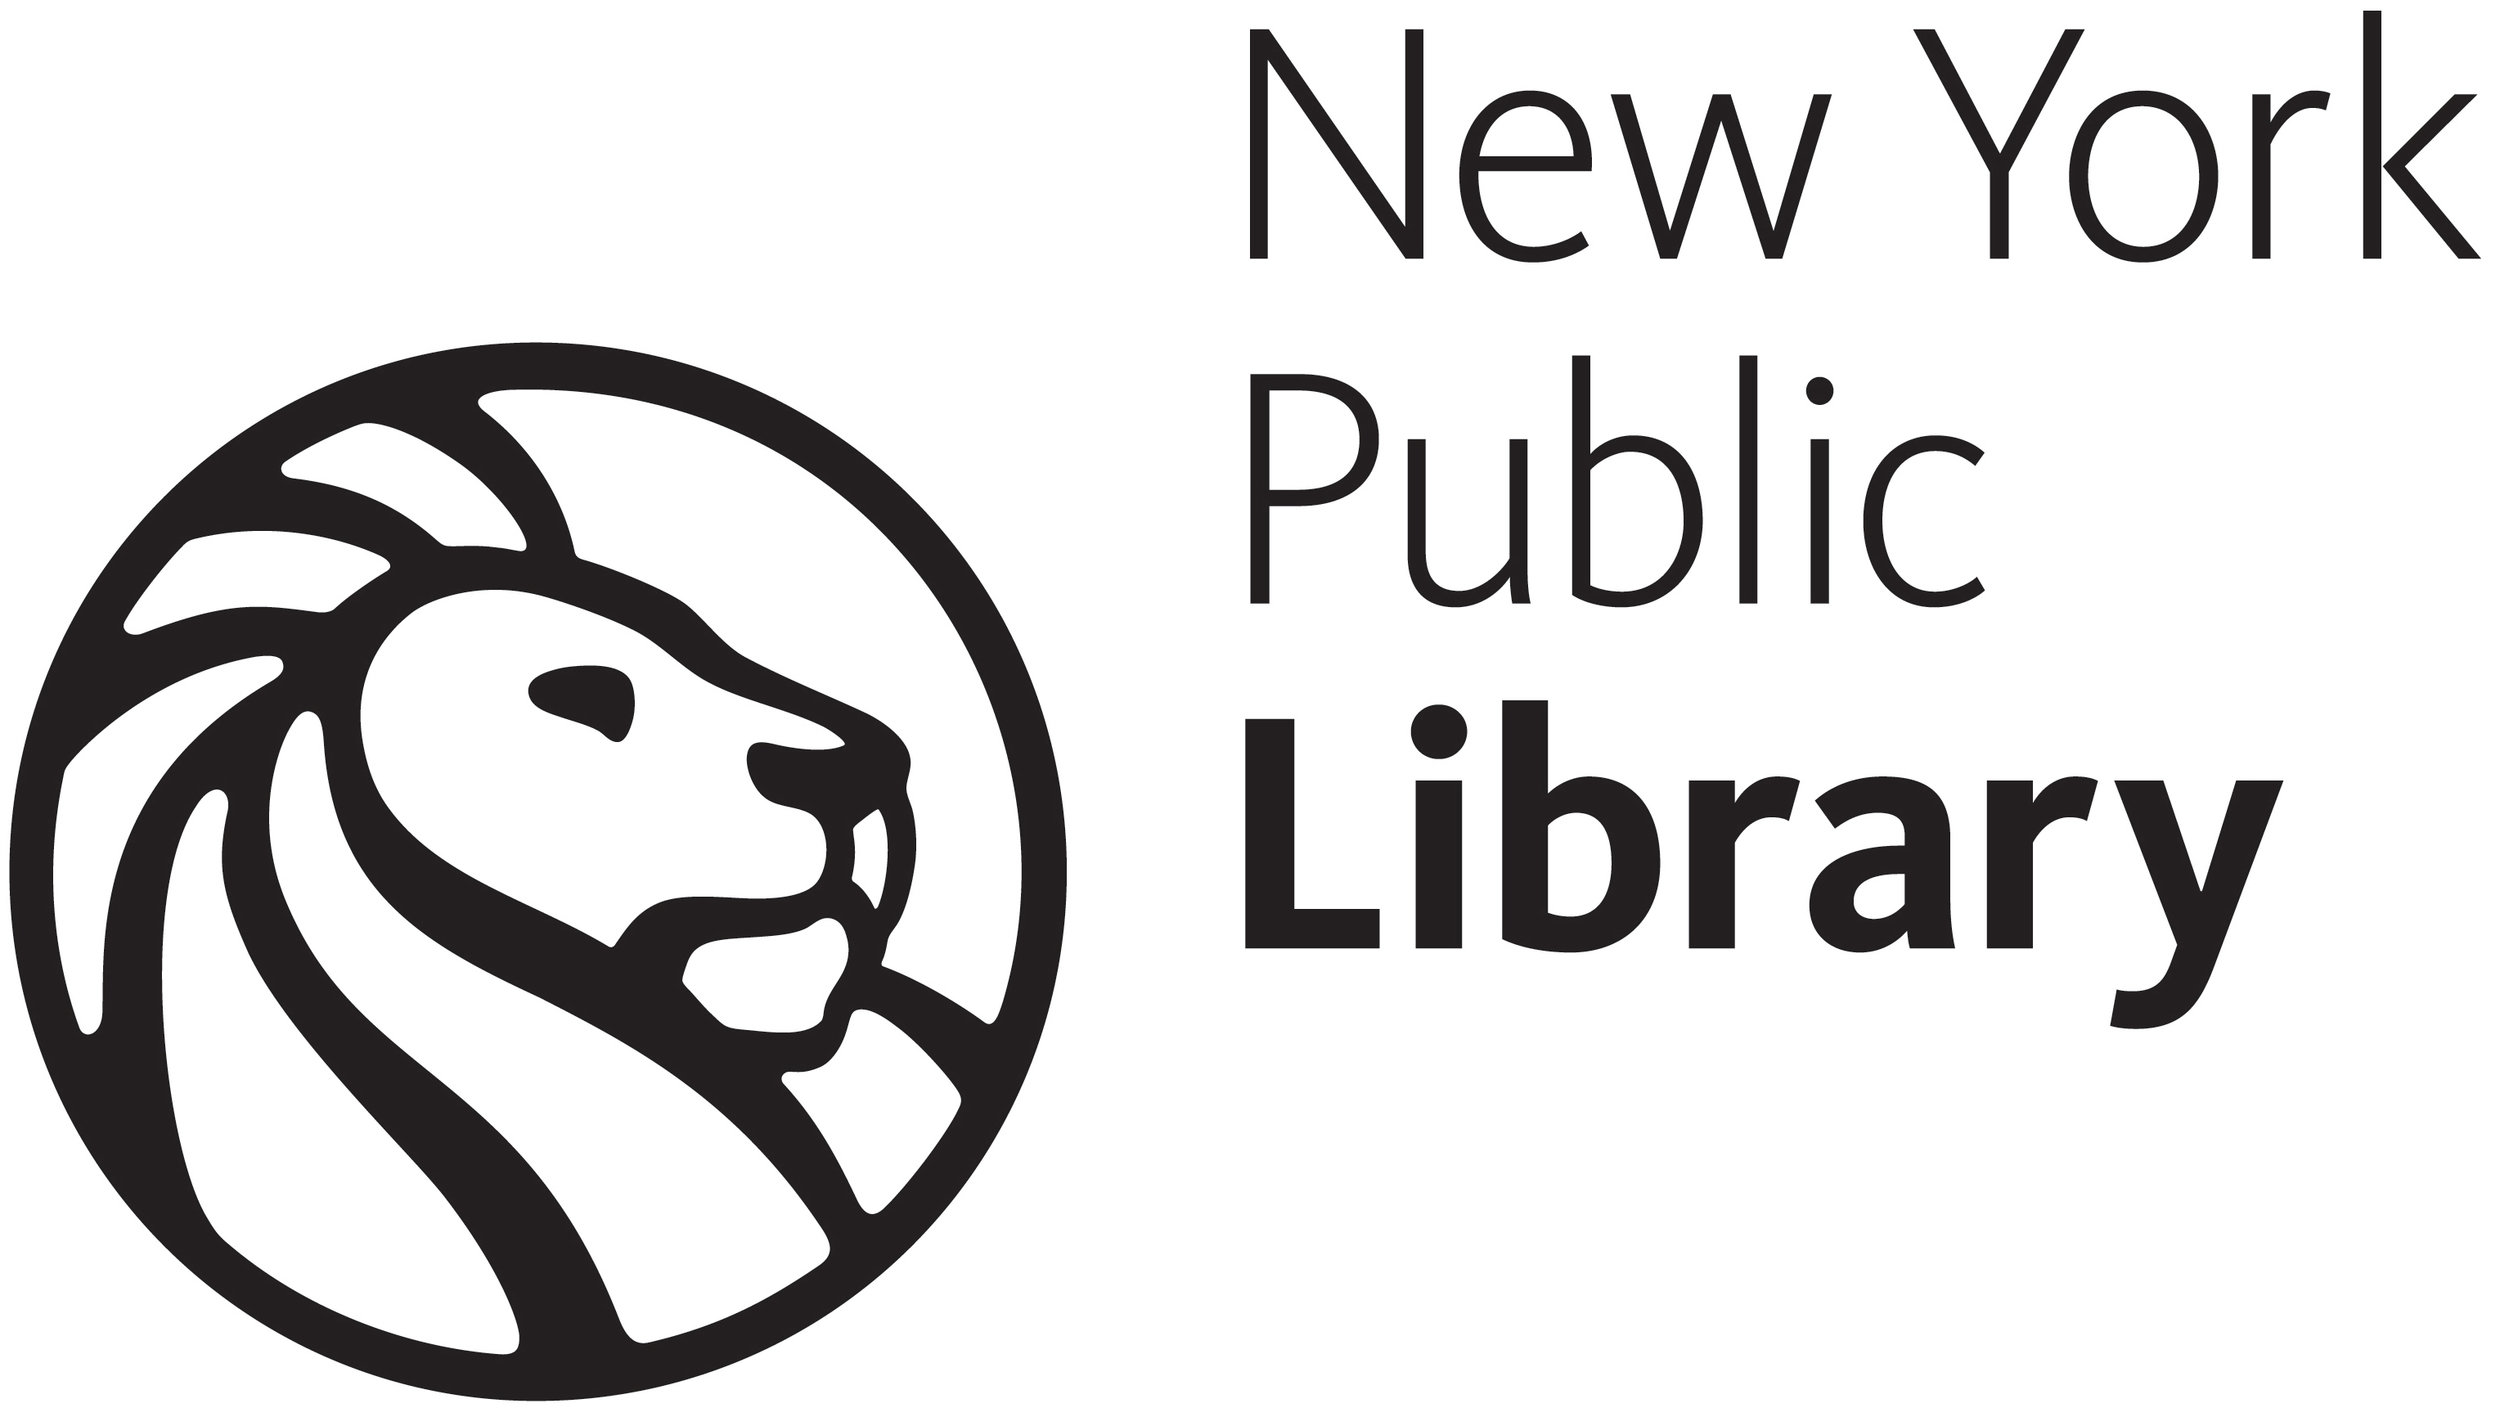 new-york-public-library_logo --3056x1732.JPG